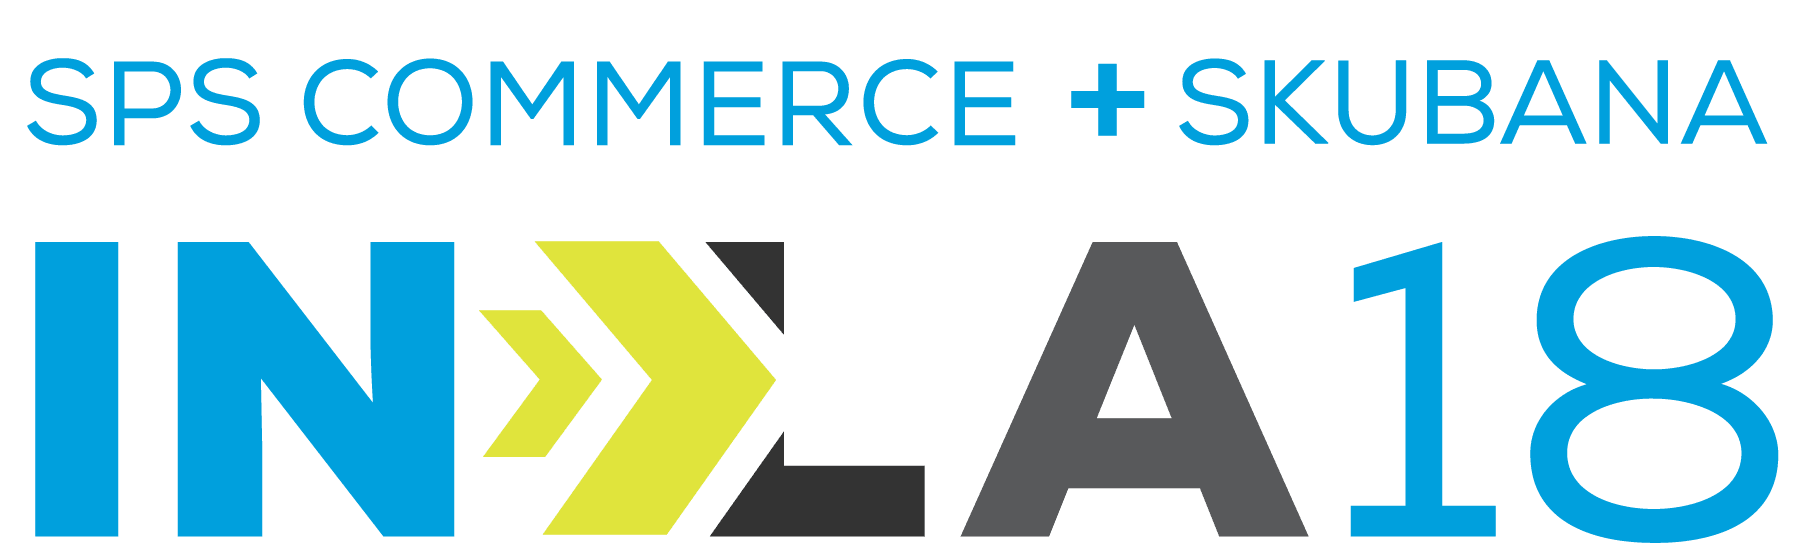 meet sps commerce experts at events near you